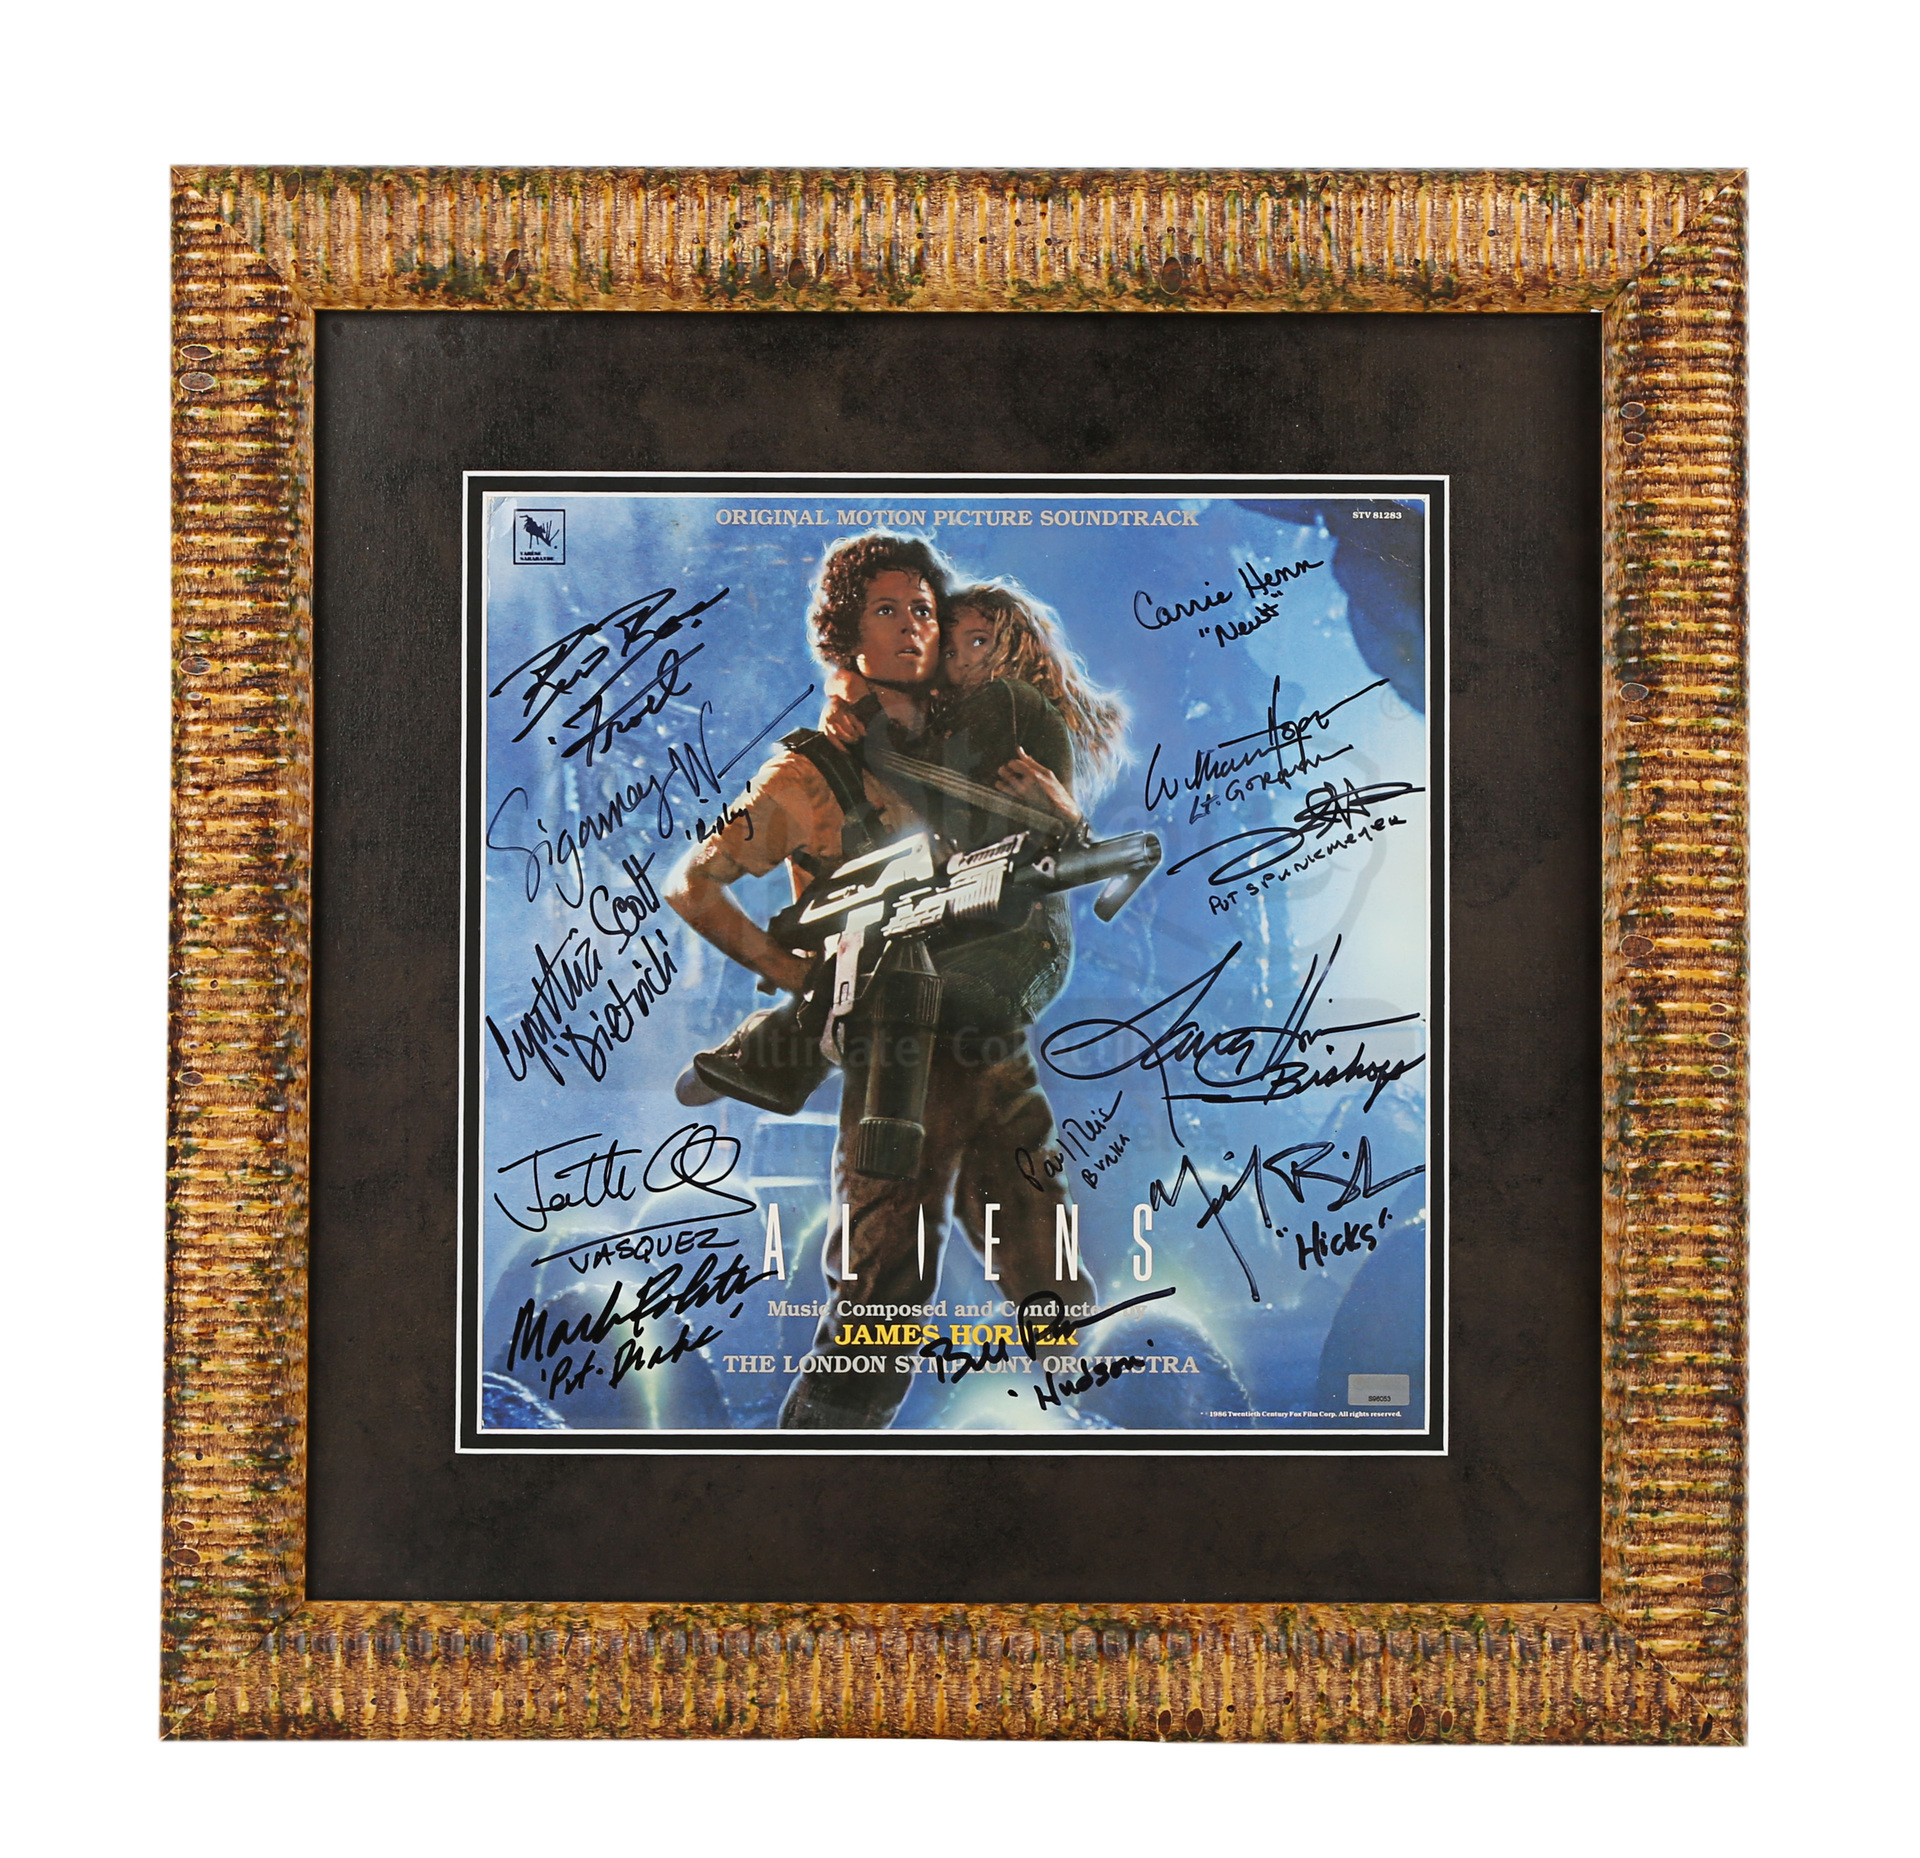 ALIENS (1986) - Framed Cast-Autographed Soundtrack Cover - Image 2 of 5